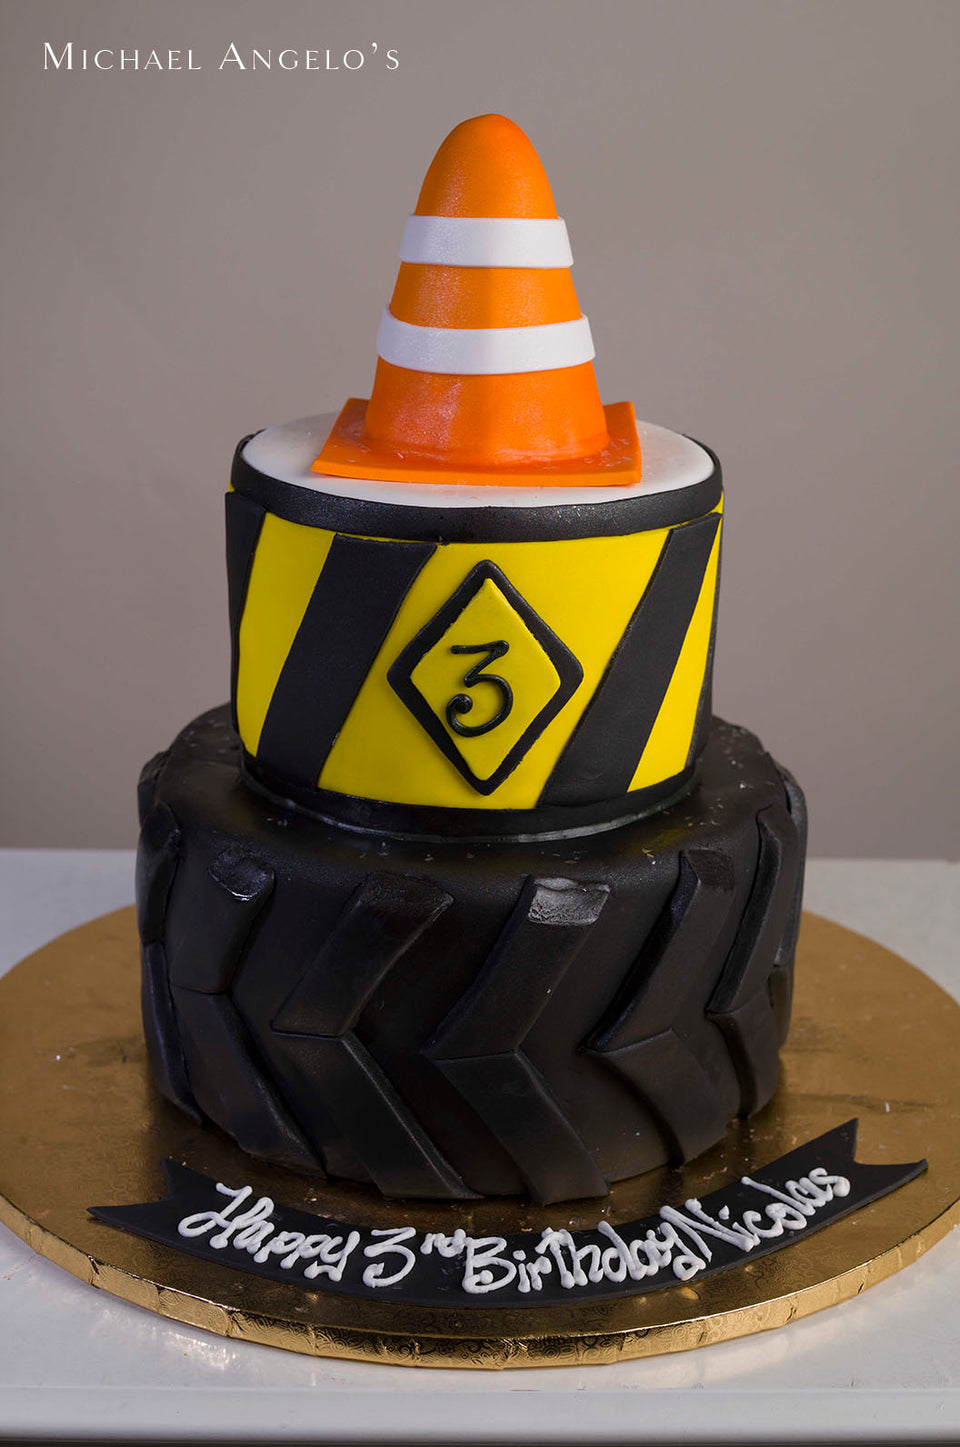 Tire with Cone #405Hobbies